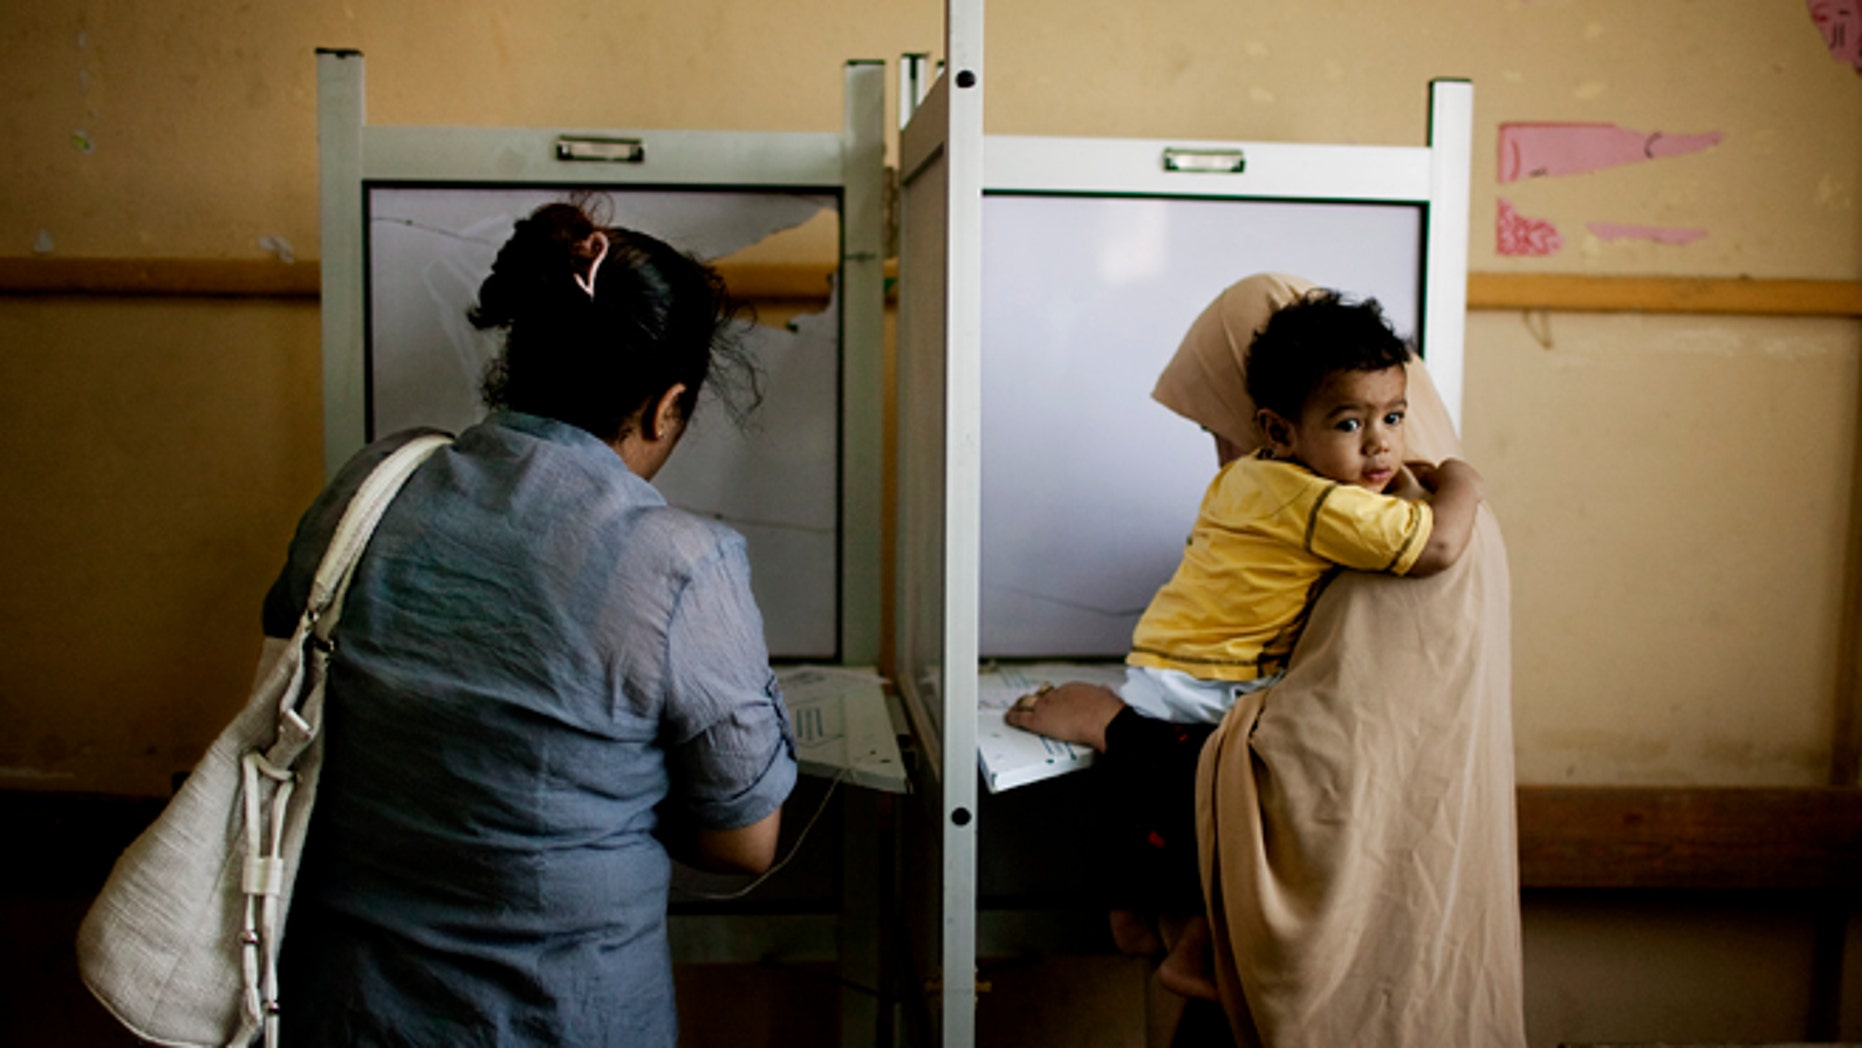 May 24, 2012: Female Egyptian voters cast their votes during the second day of presidential elections in the Mataraya neighborhood of Cairo, Egypt.